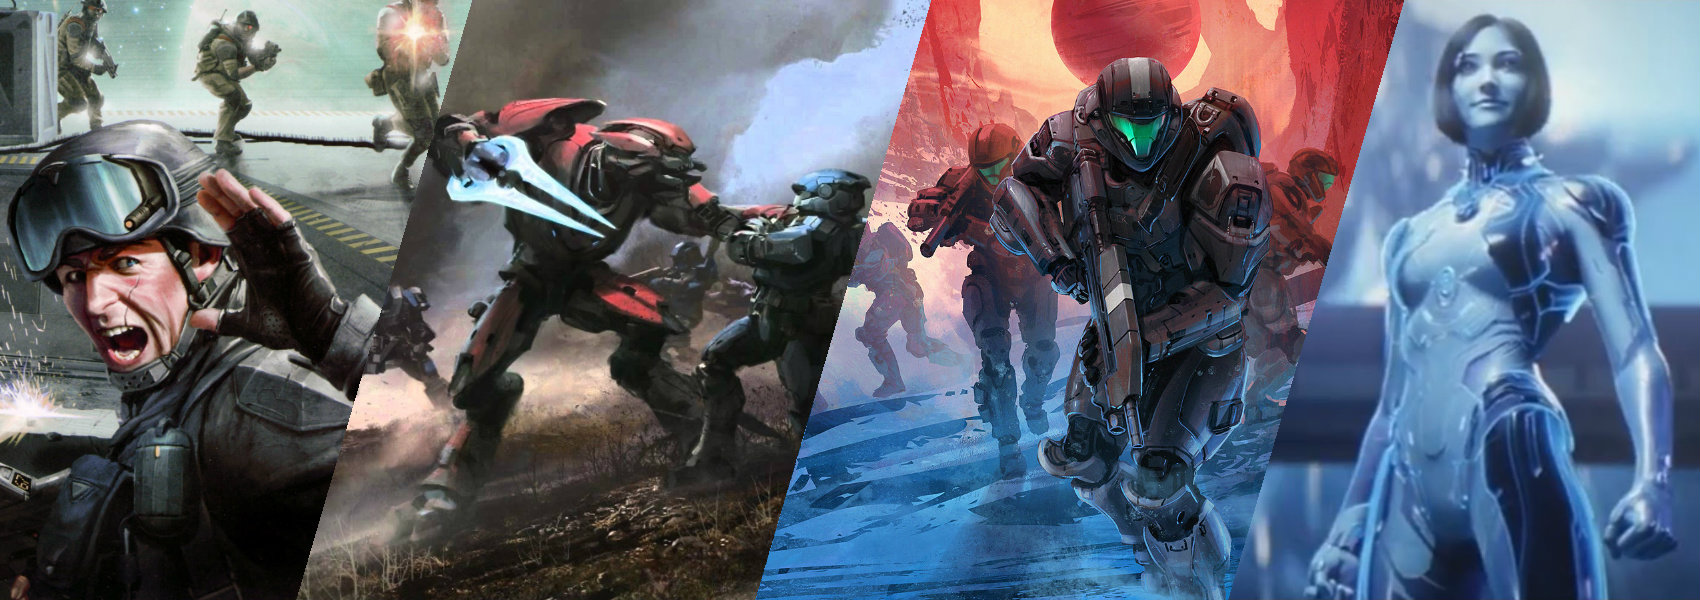 HALO LORE - A curated guide to the Halo story for people looking to understand the Halo universe.